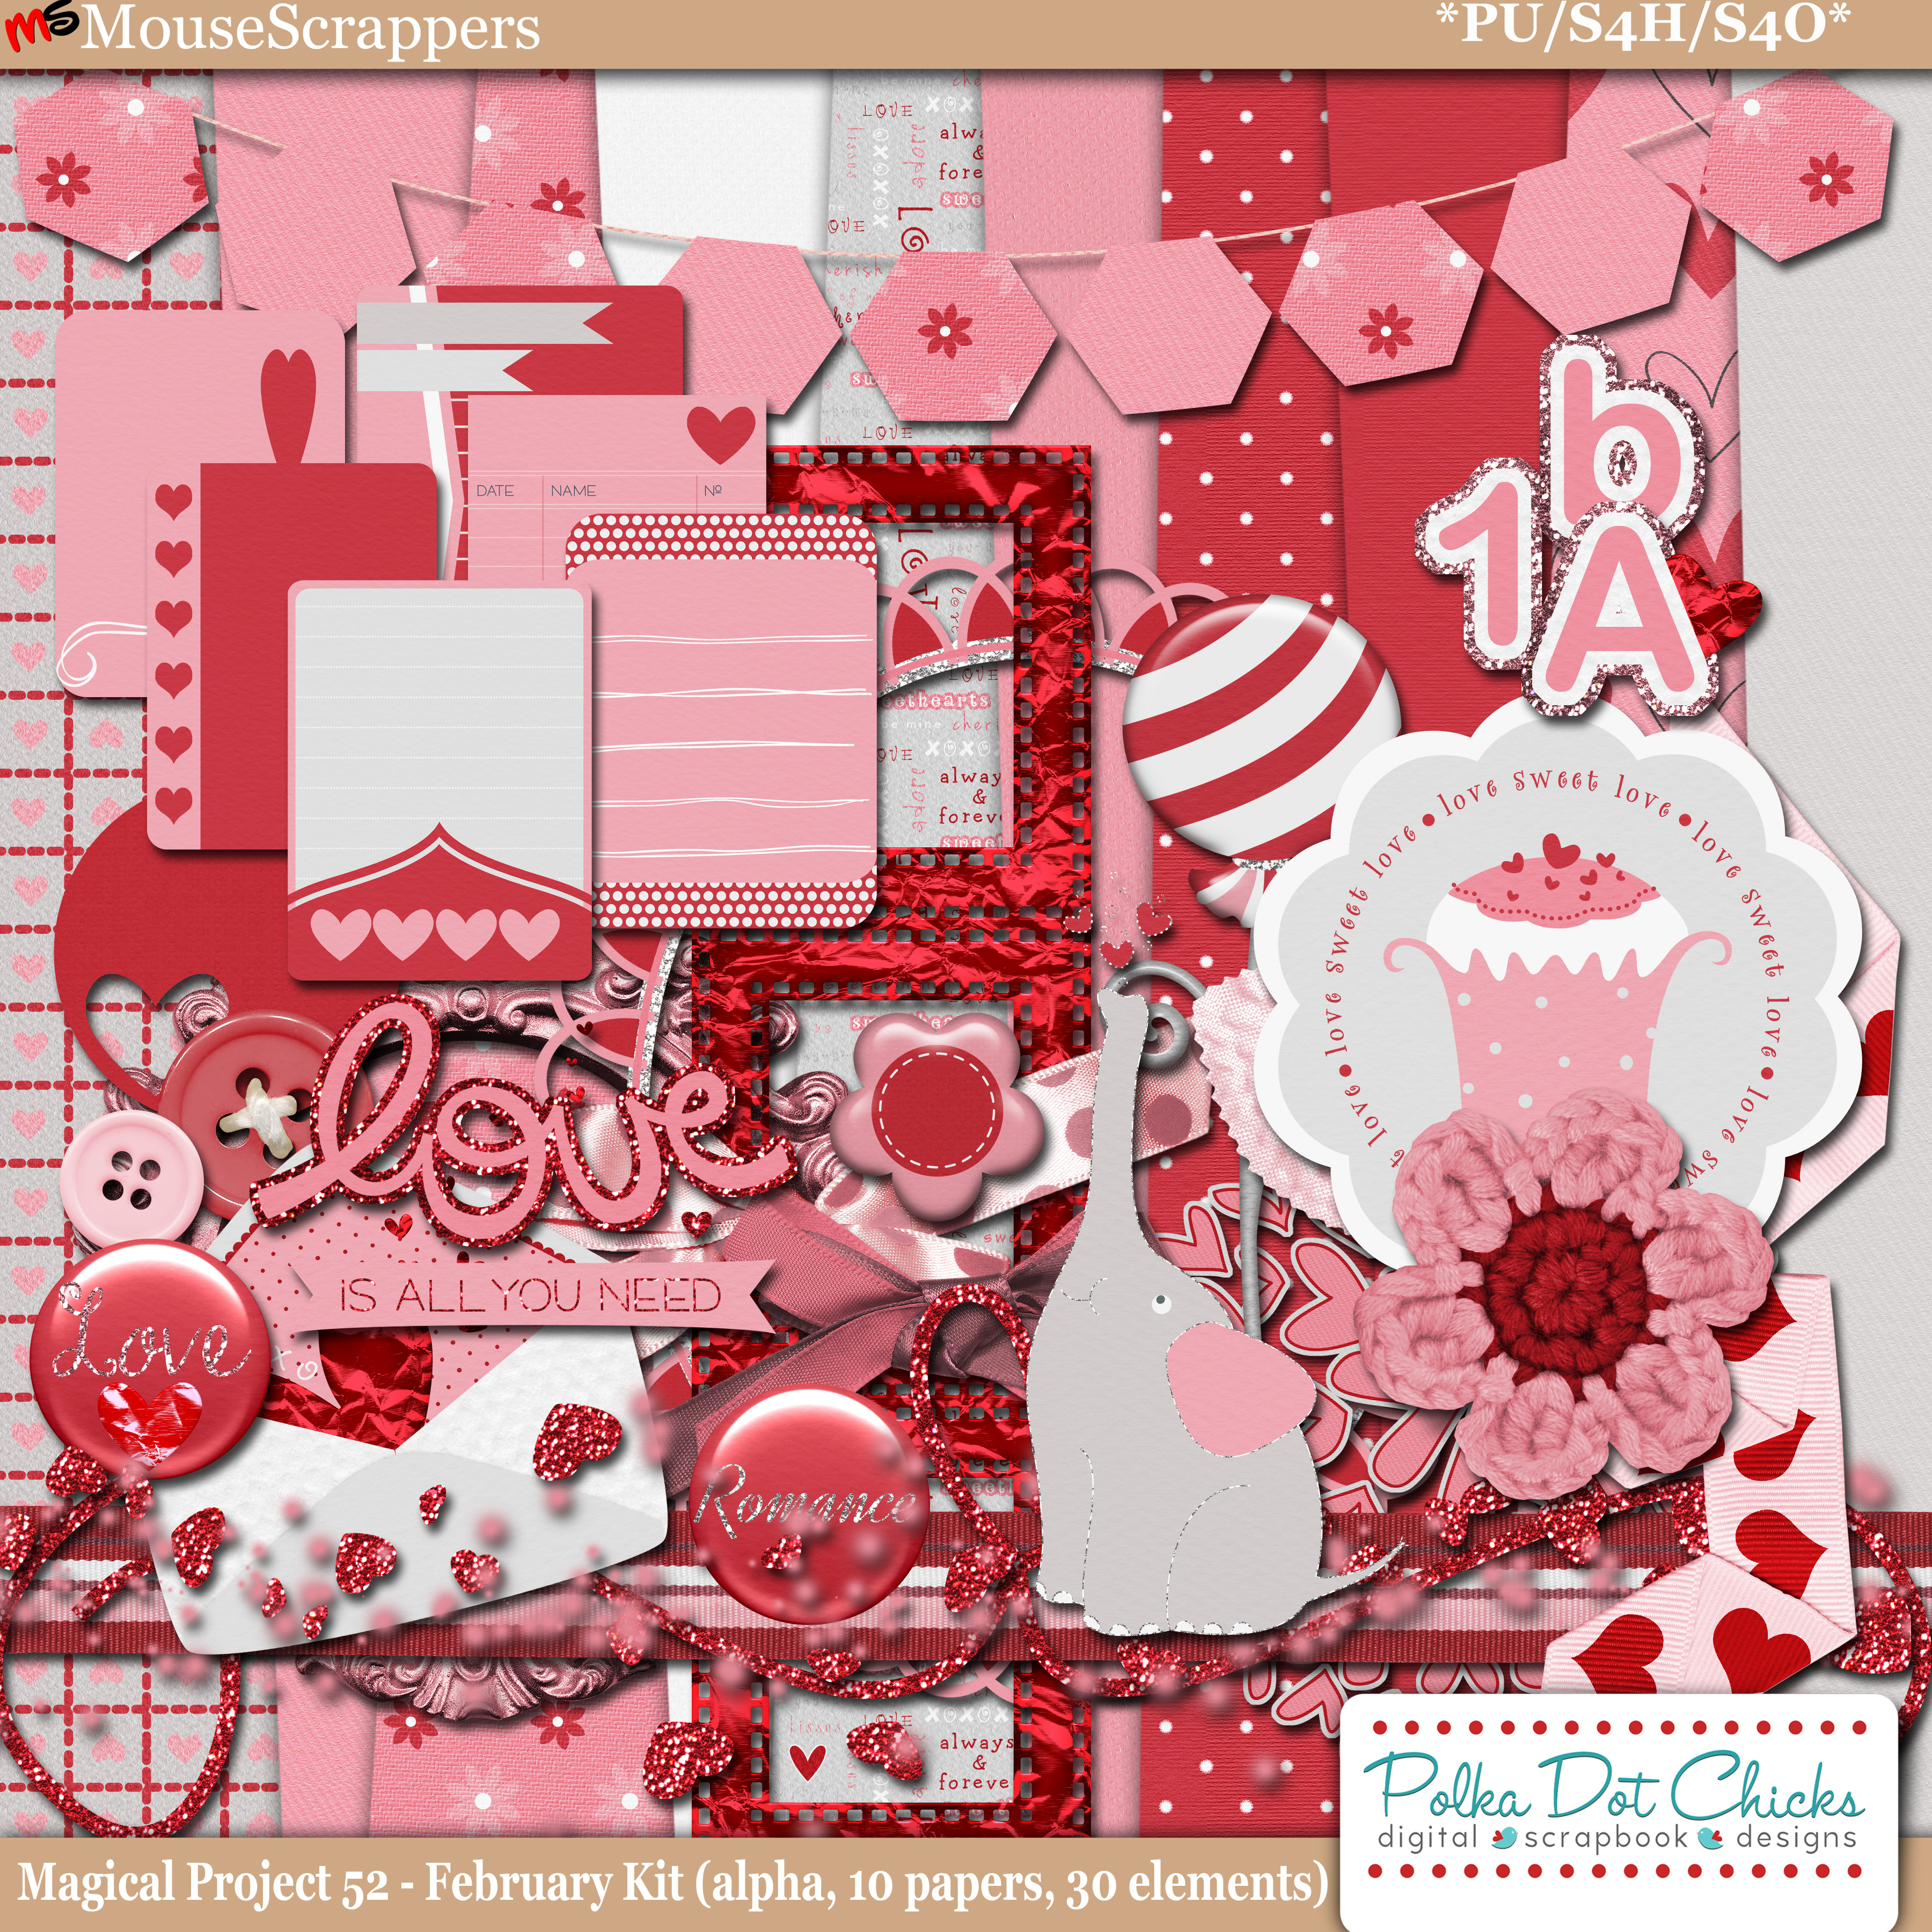 Magical Project 52 - February Kit